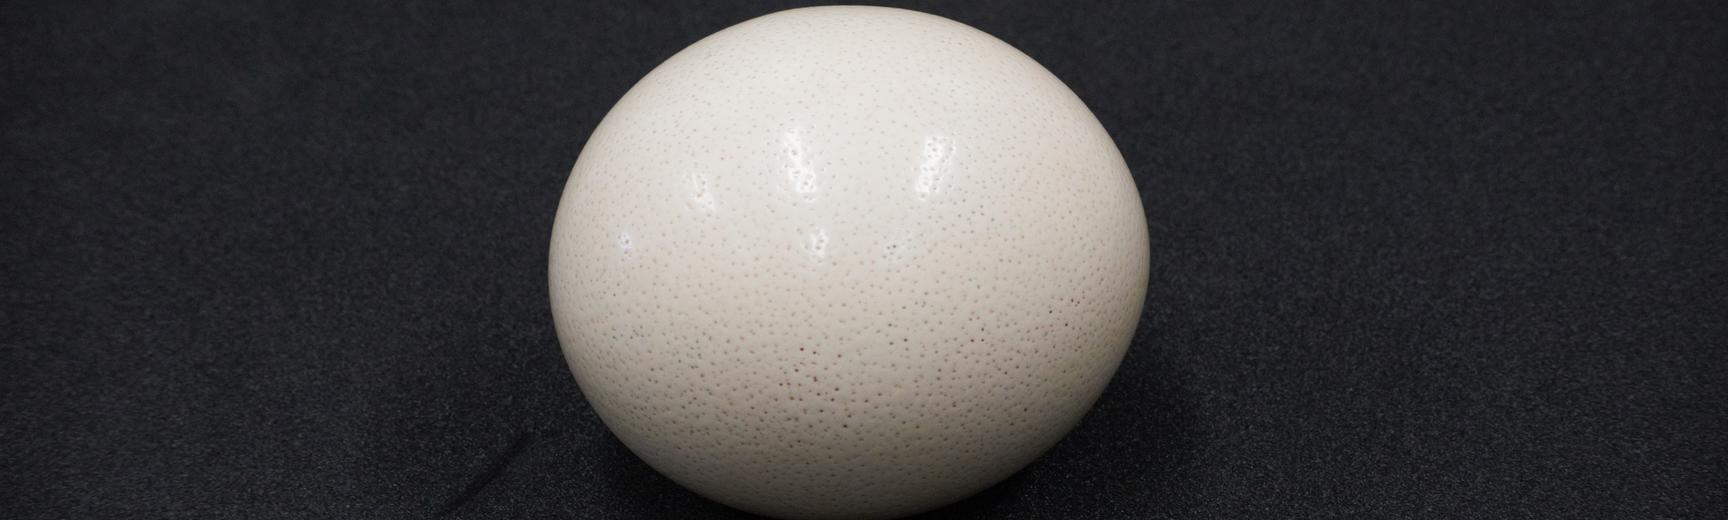 pic for whose egg